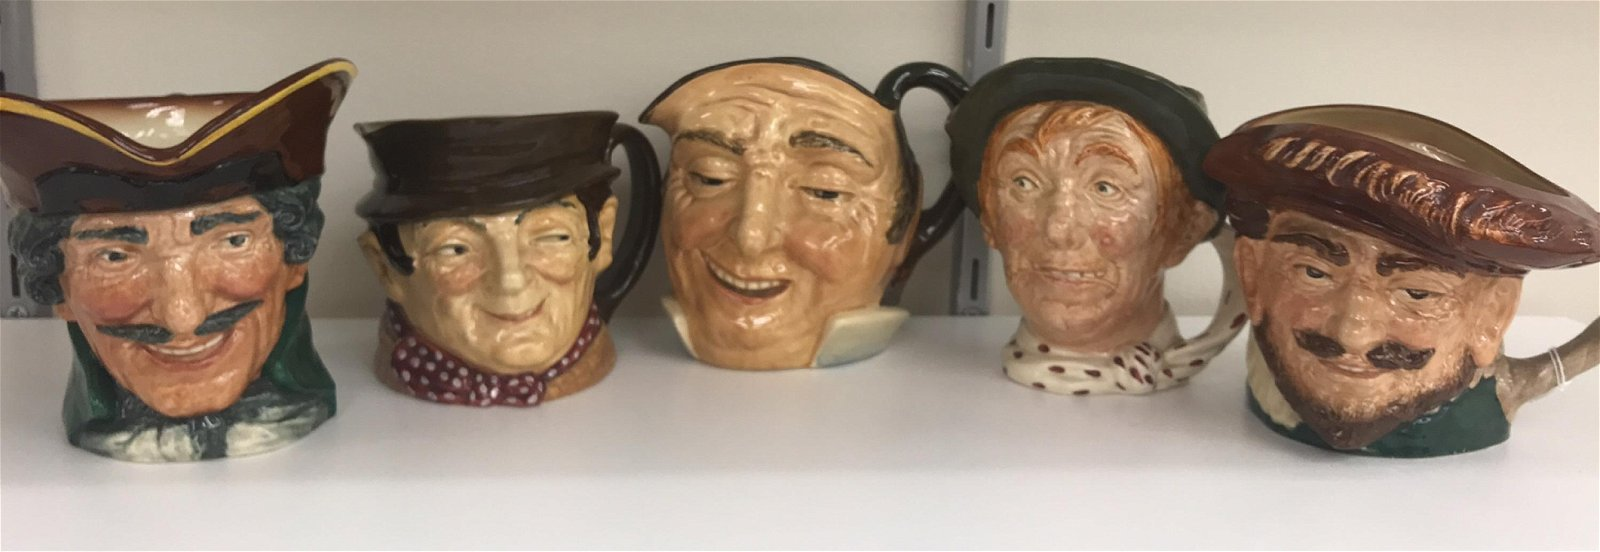 (5) ROYAL DOULTON TOBY MUGS